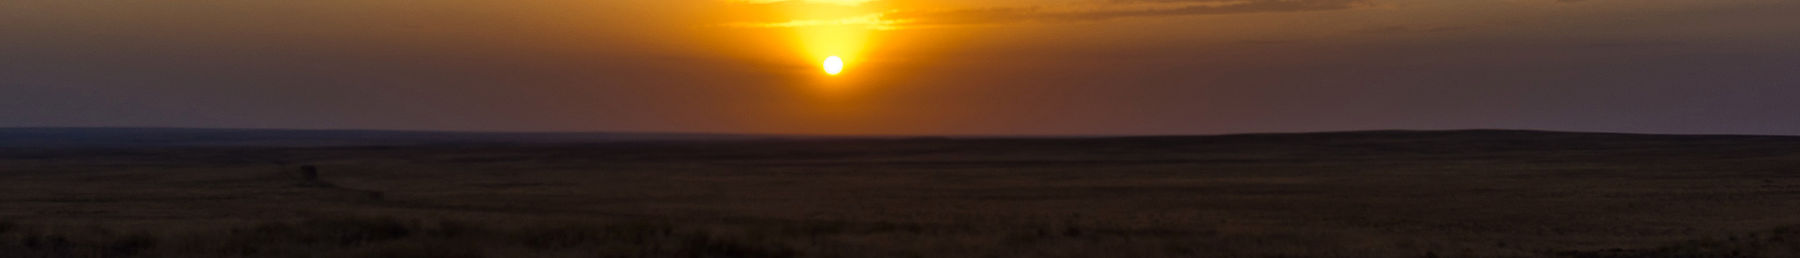 Sunset on the steppe, near Boralday